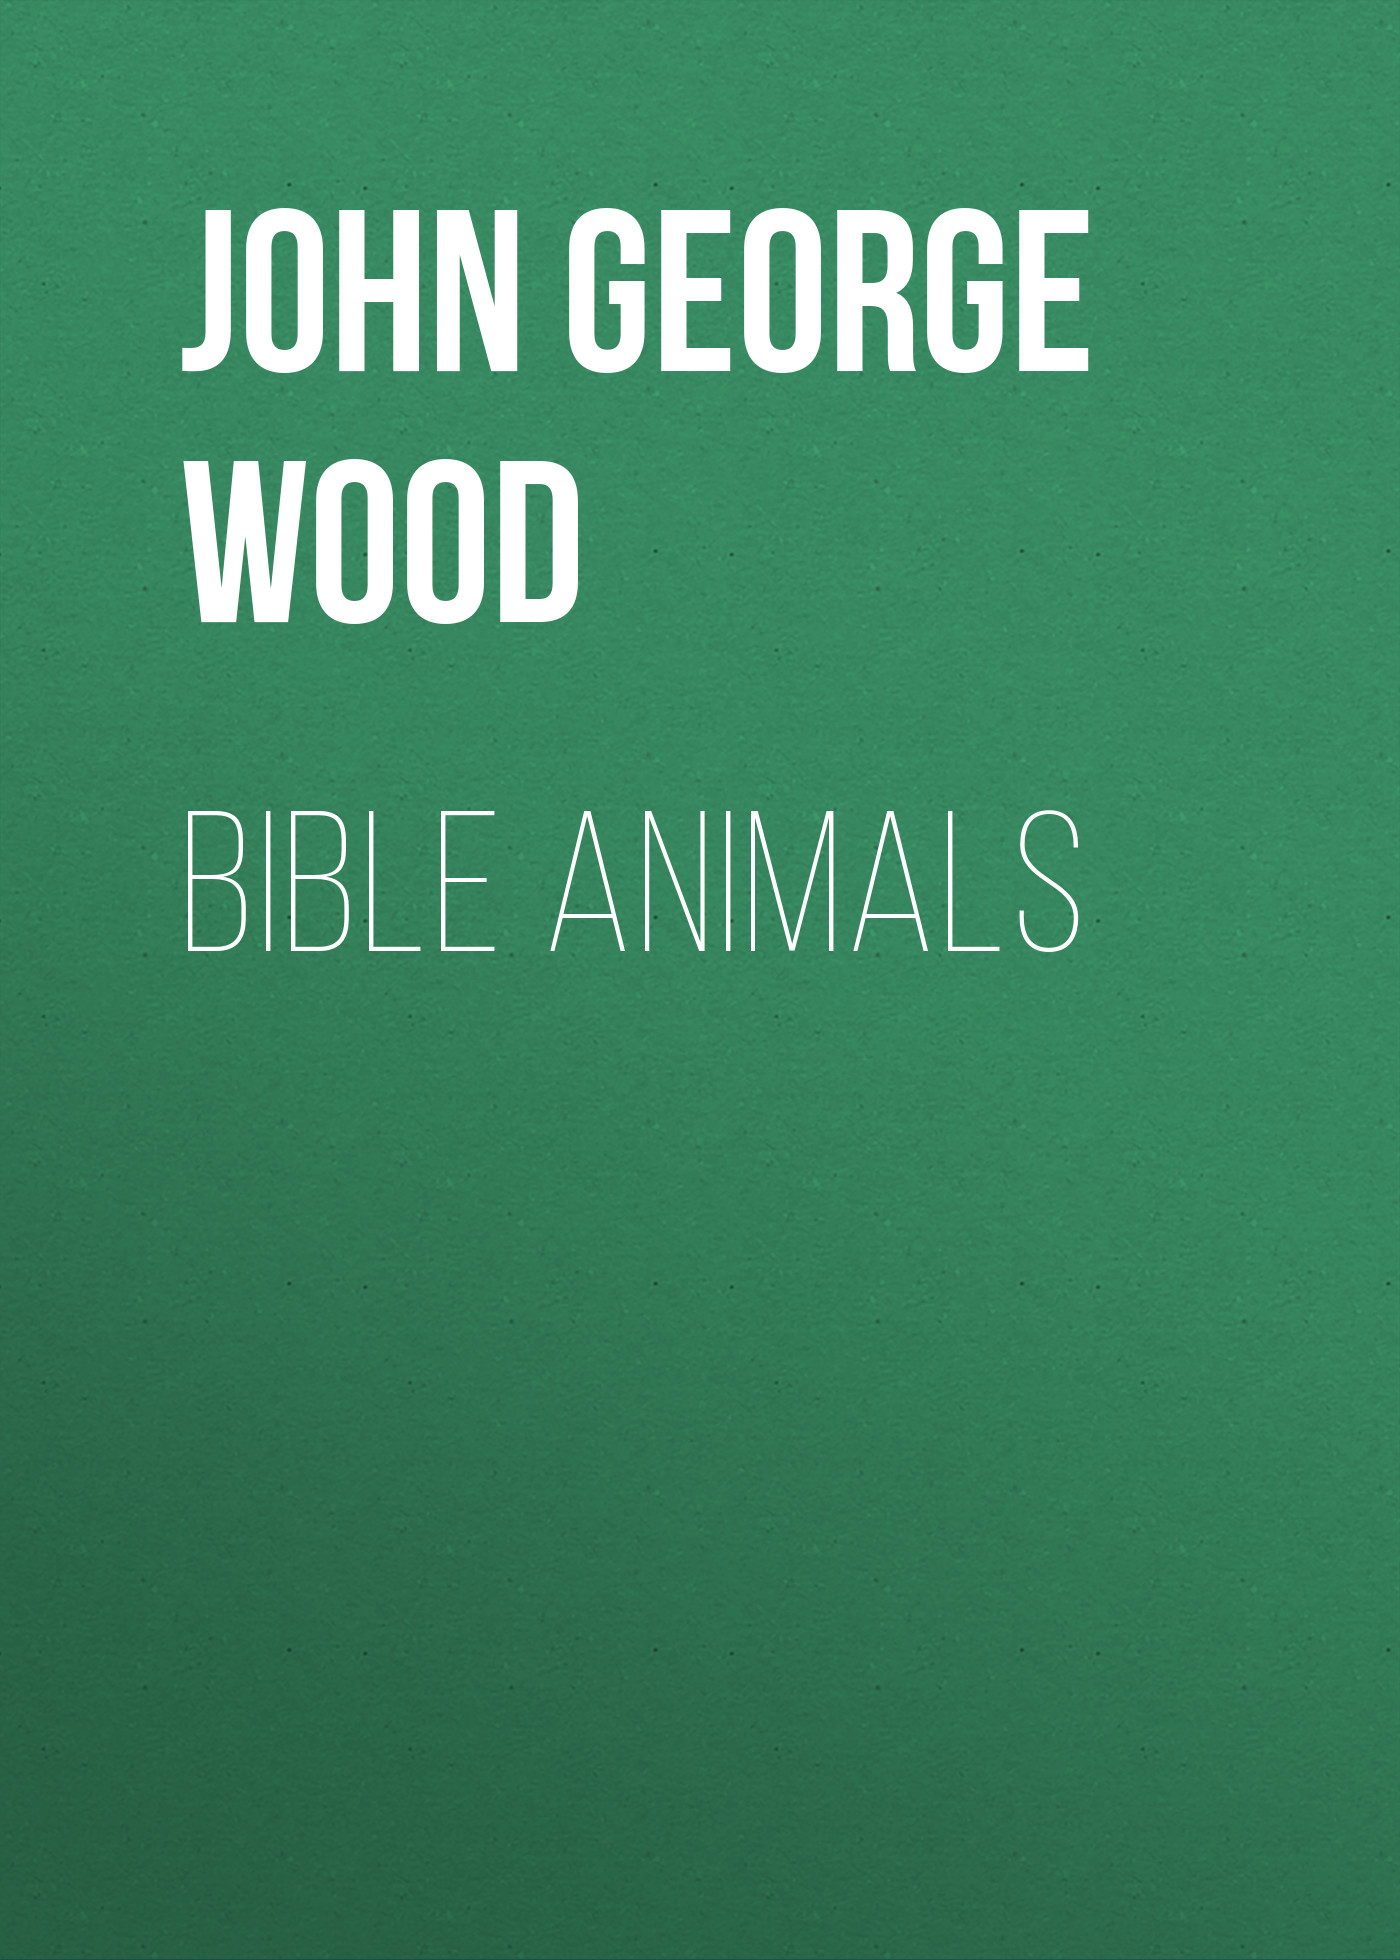 John George Wood Bible Animals john george wood bible animals